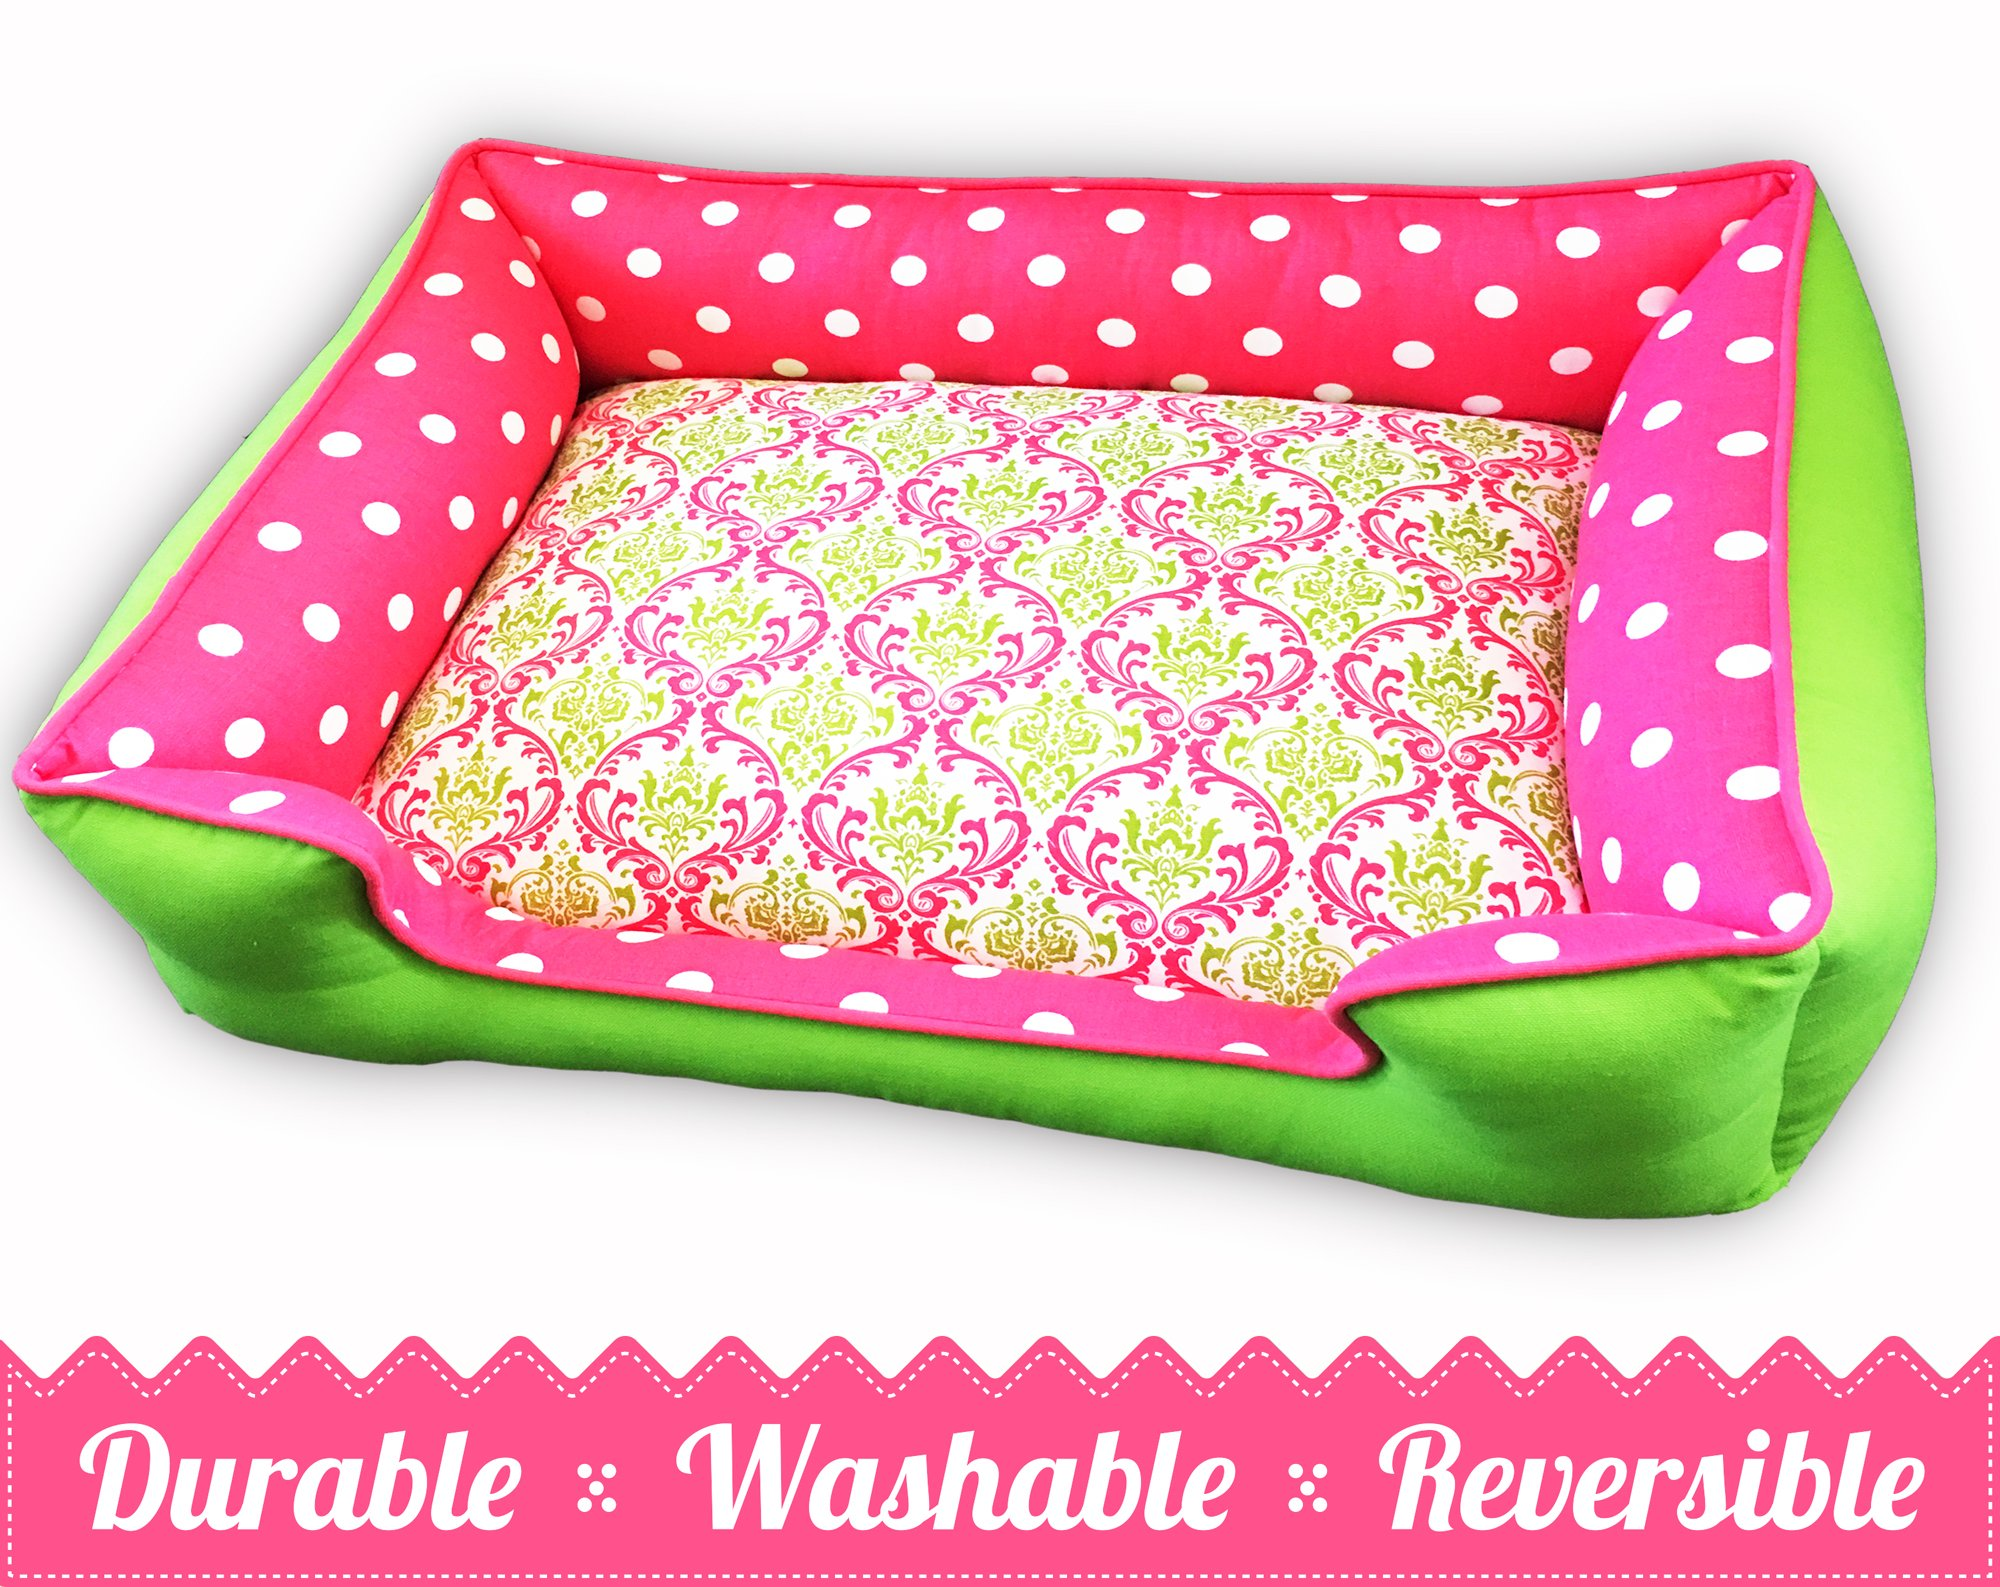 Pink & Chartreuse Pet Be | Ultimate in Comfort & Design | Bed is Reversible & Washable with a removable cover | Durable | Cat or Dog Bed | Quality Pet Bed | Dog Bed | Cat Bed